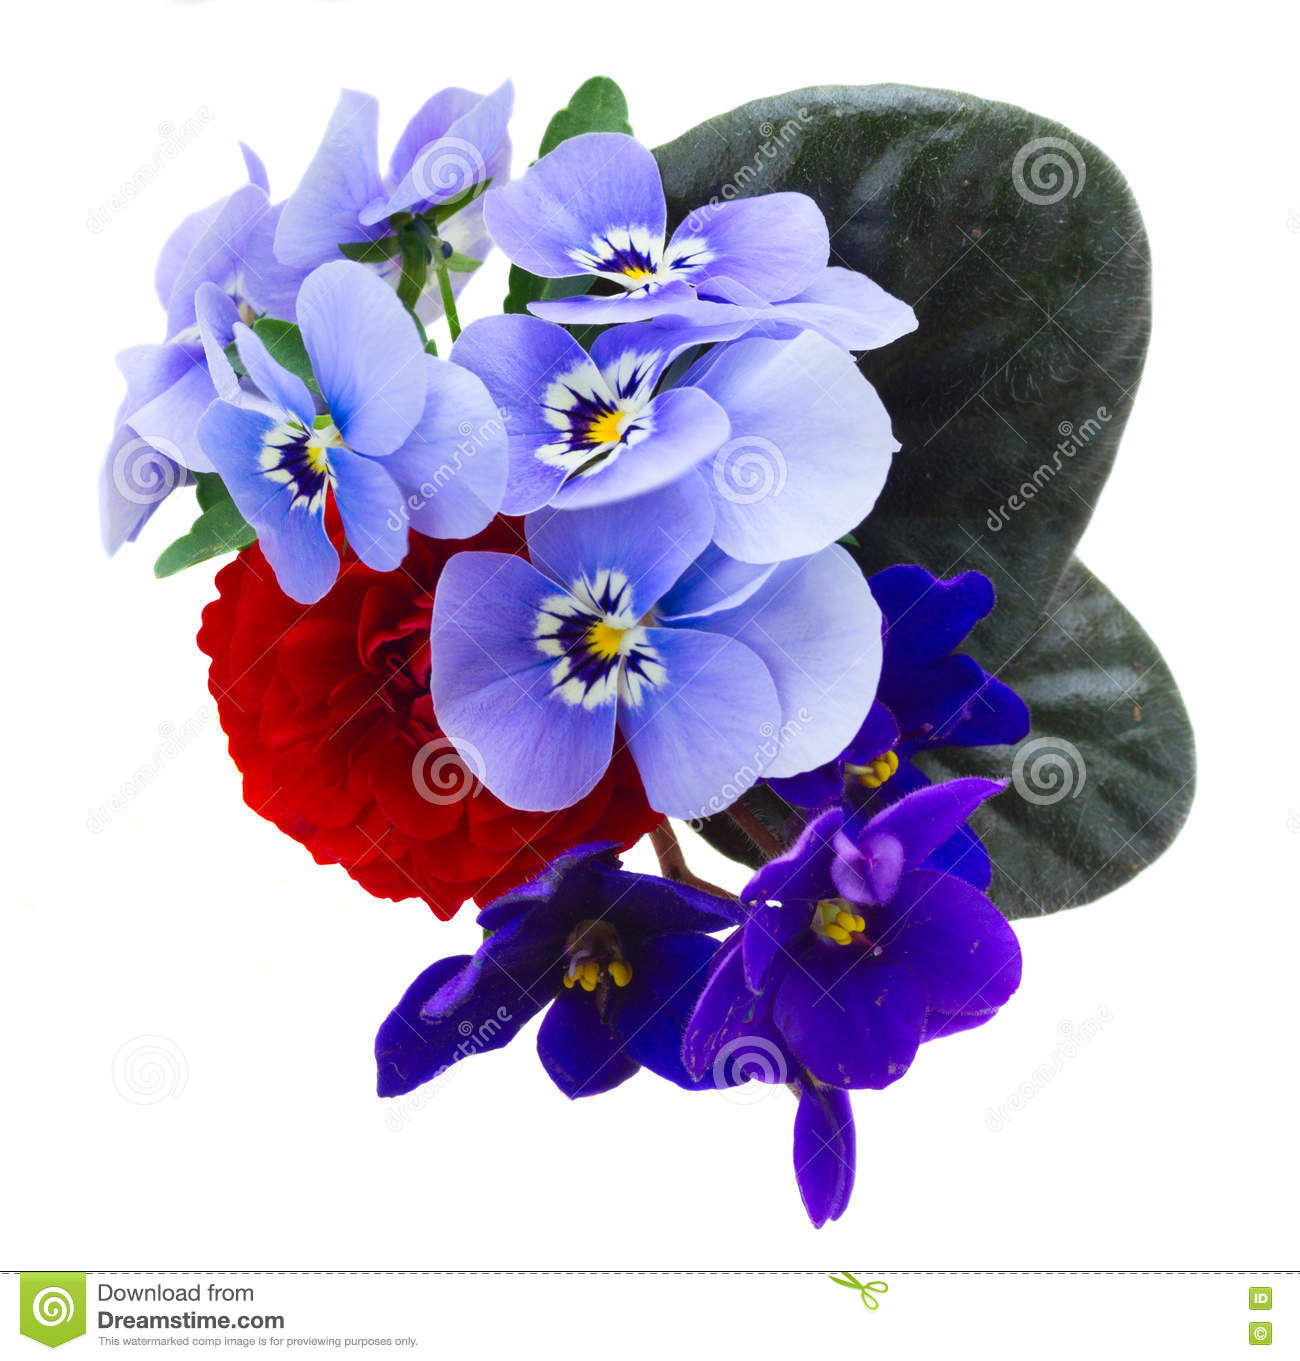 Image result for A Posy of Violets